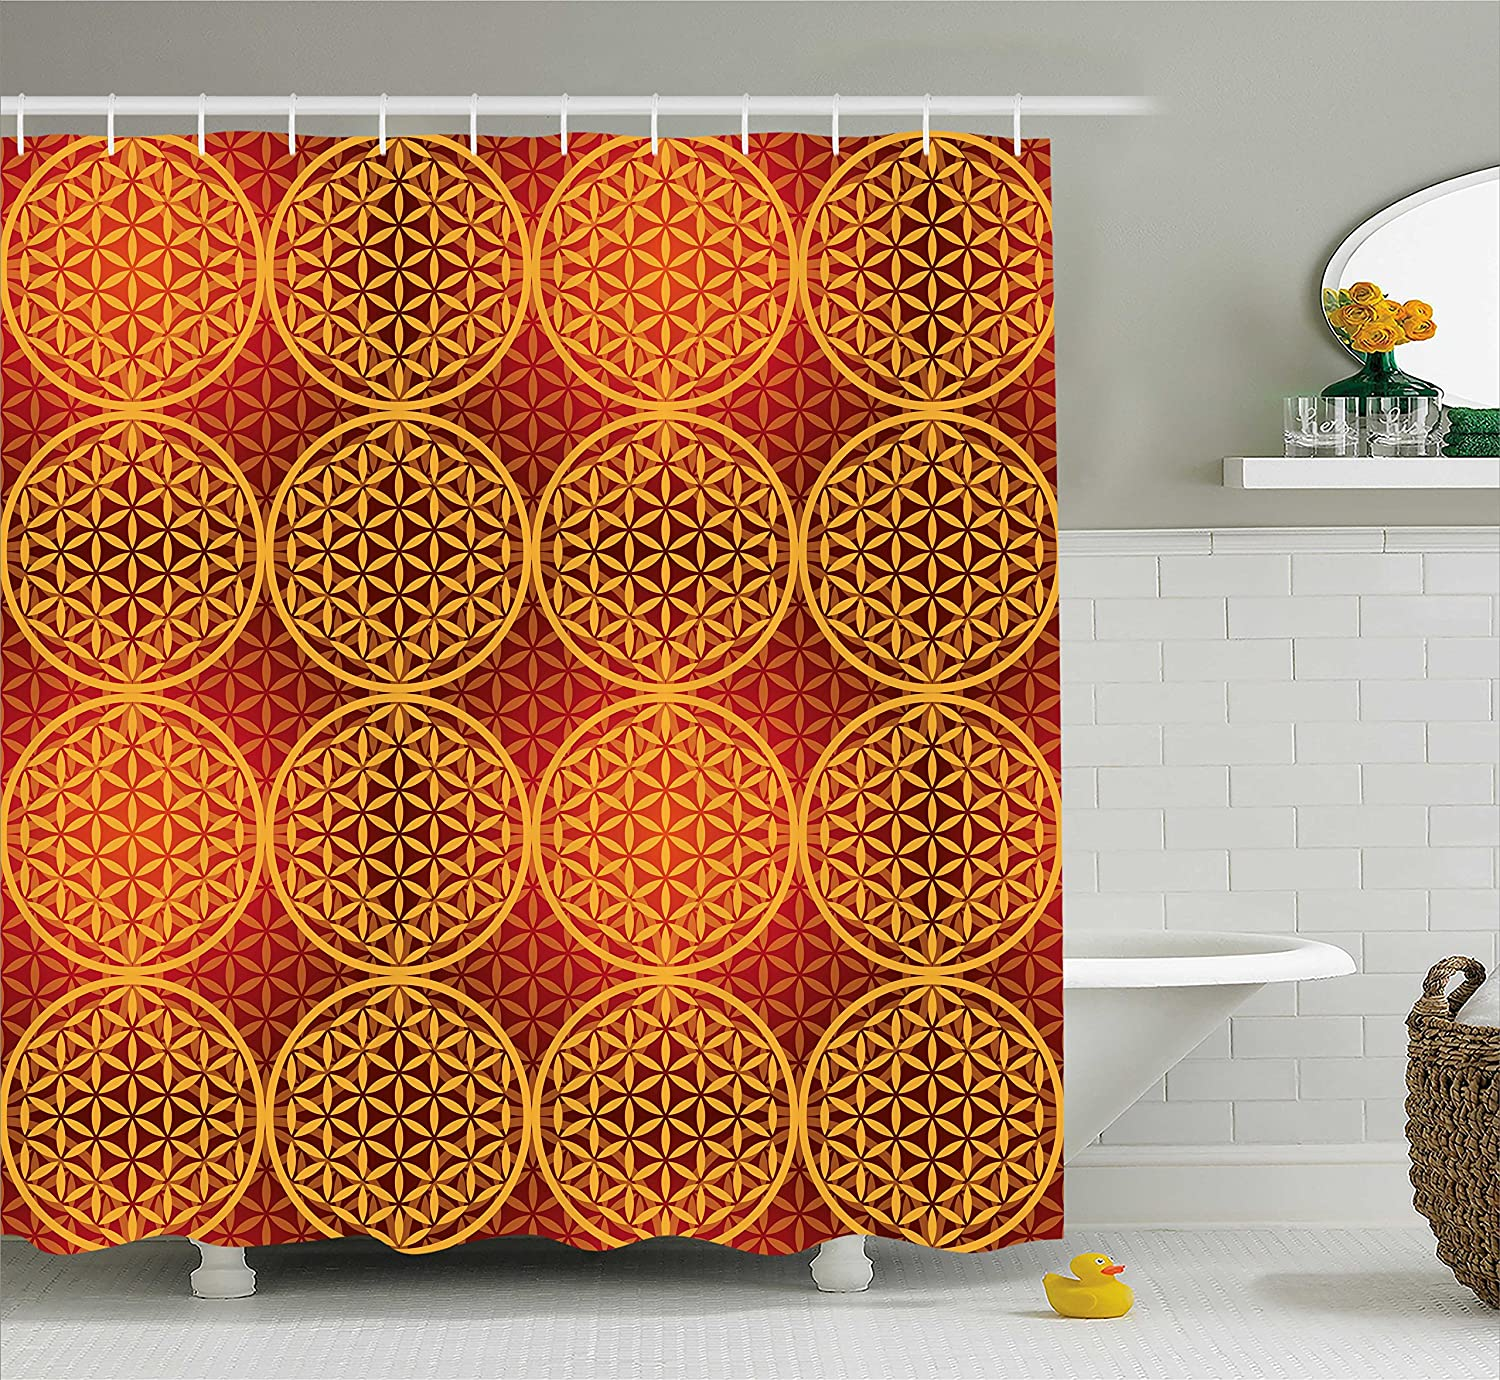 Ambesonne Vintage Decor Shower Curtain Set Red Orange sc/_13159/_Vintage/_05.26/_long Motor Scooter Classical Caricature for Hippies Urban Memories Youth Contemporary Art 75 Inches Long Bathroom Accessories